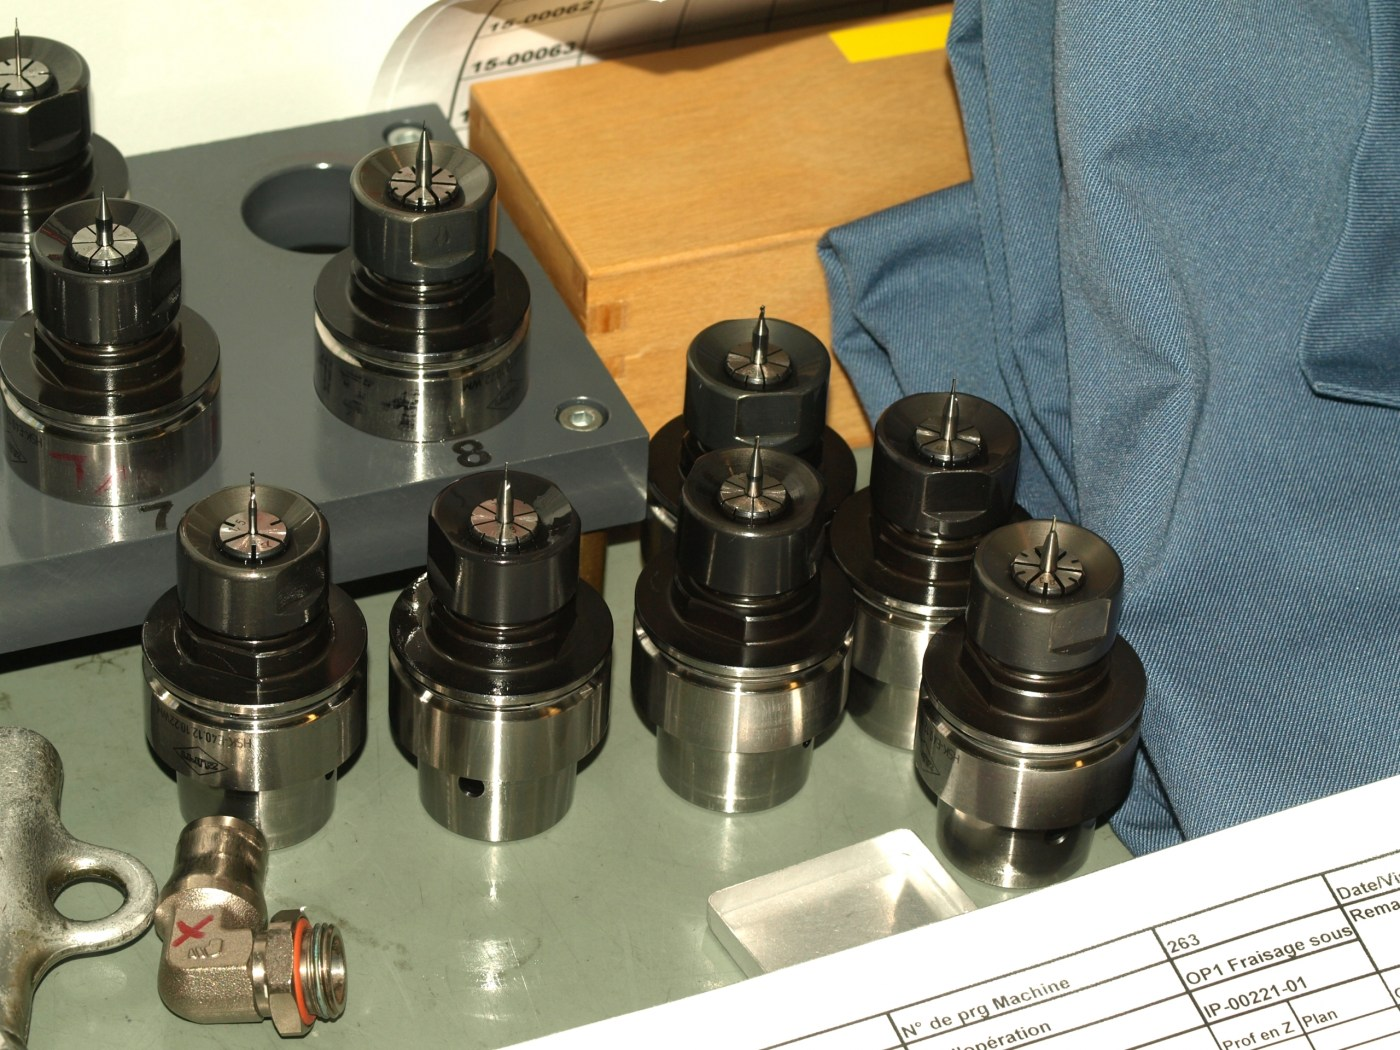 Drill bits used to mill watch hands on automated CNC machine